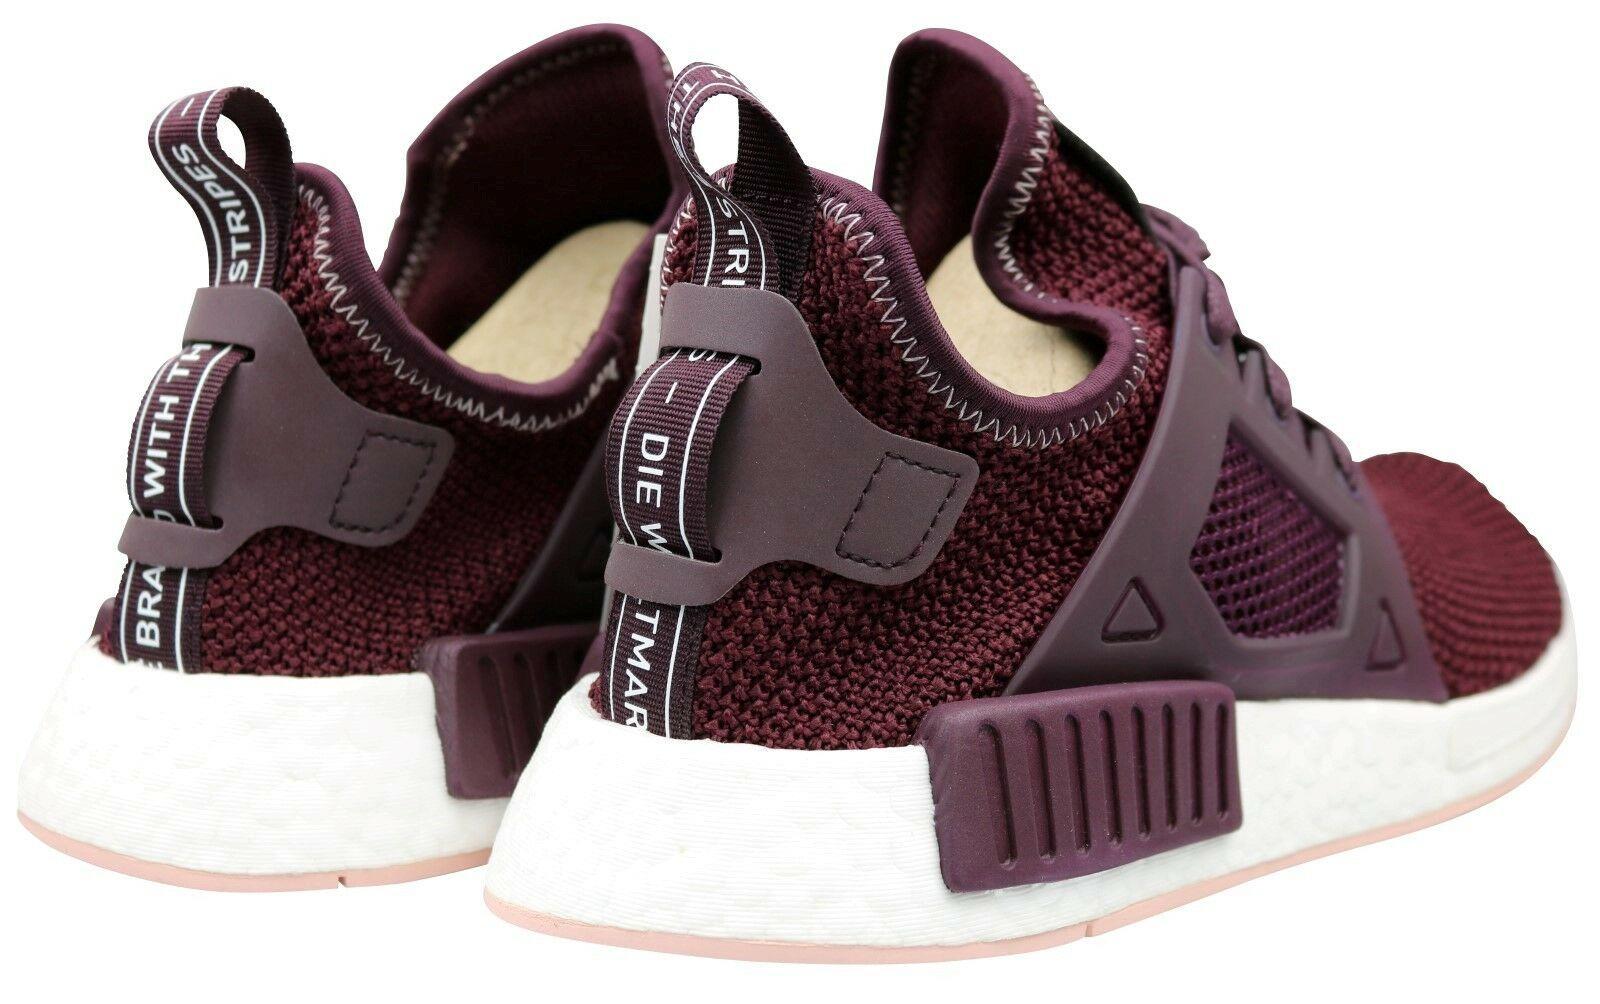 ADIDAS NMD xr1 W Sneaker Donna Scarpe by9820 ROSSO MIS. MIS. MIS. 36 - 42 NUOVO & OVP 1f3e78